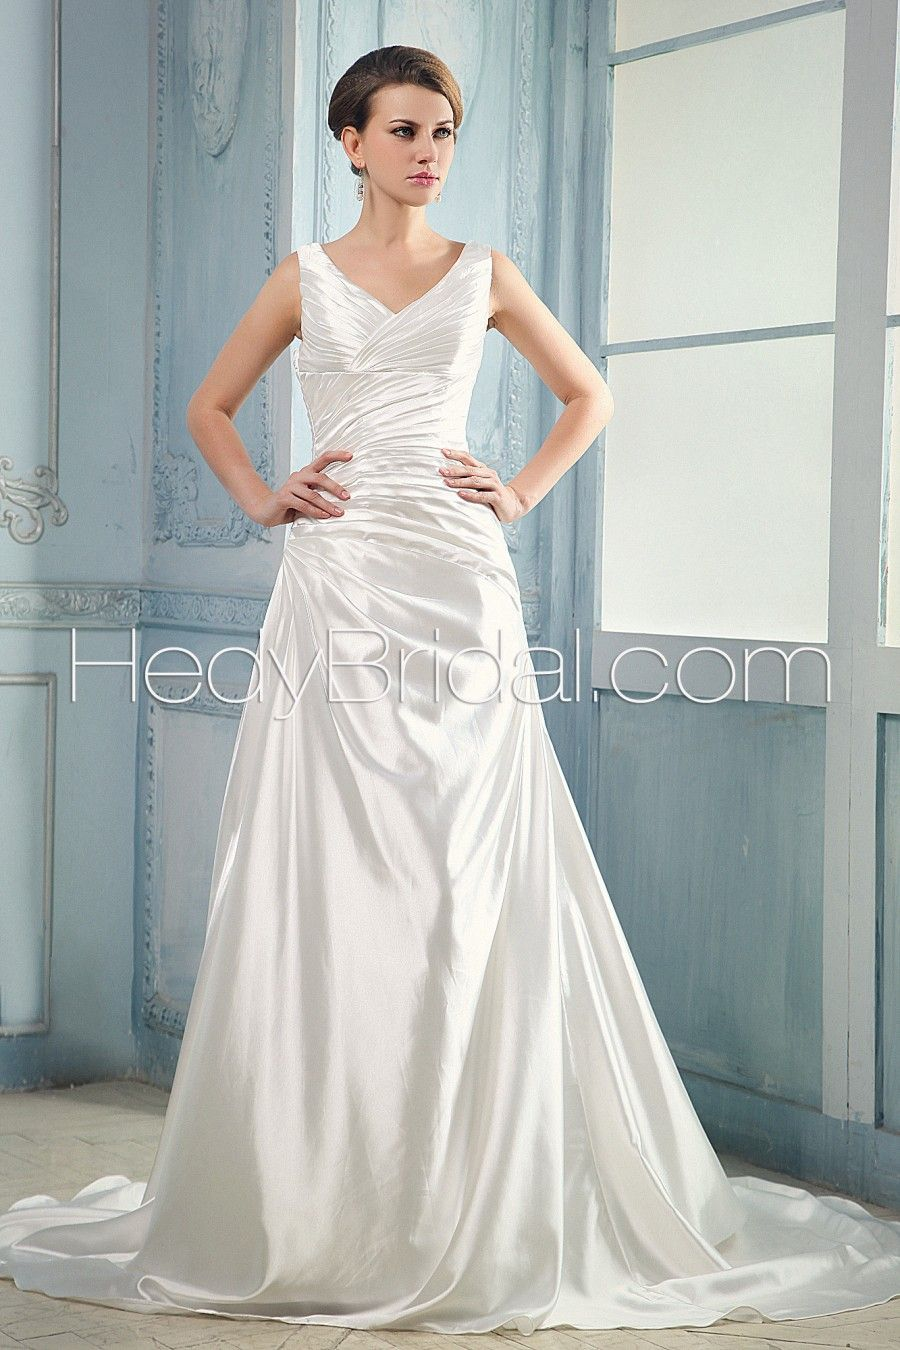 Unique Wedding Gowns Uk Online Gallery - All Wedding Dresses ...